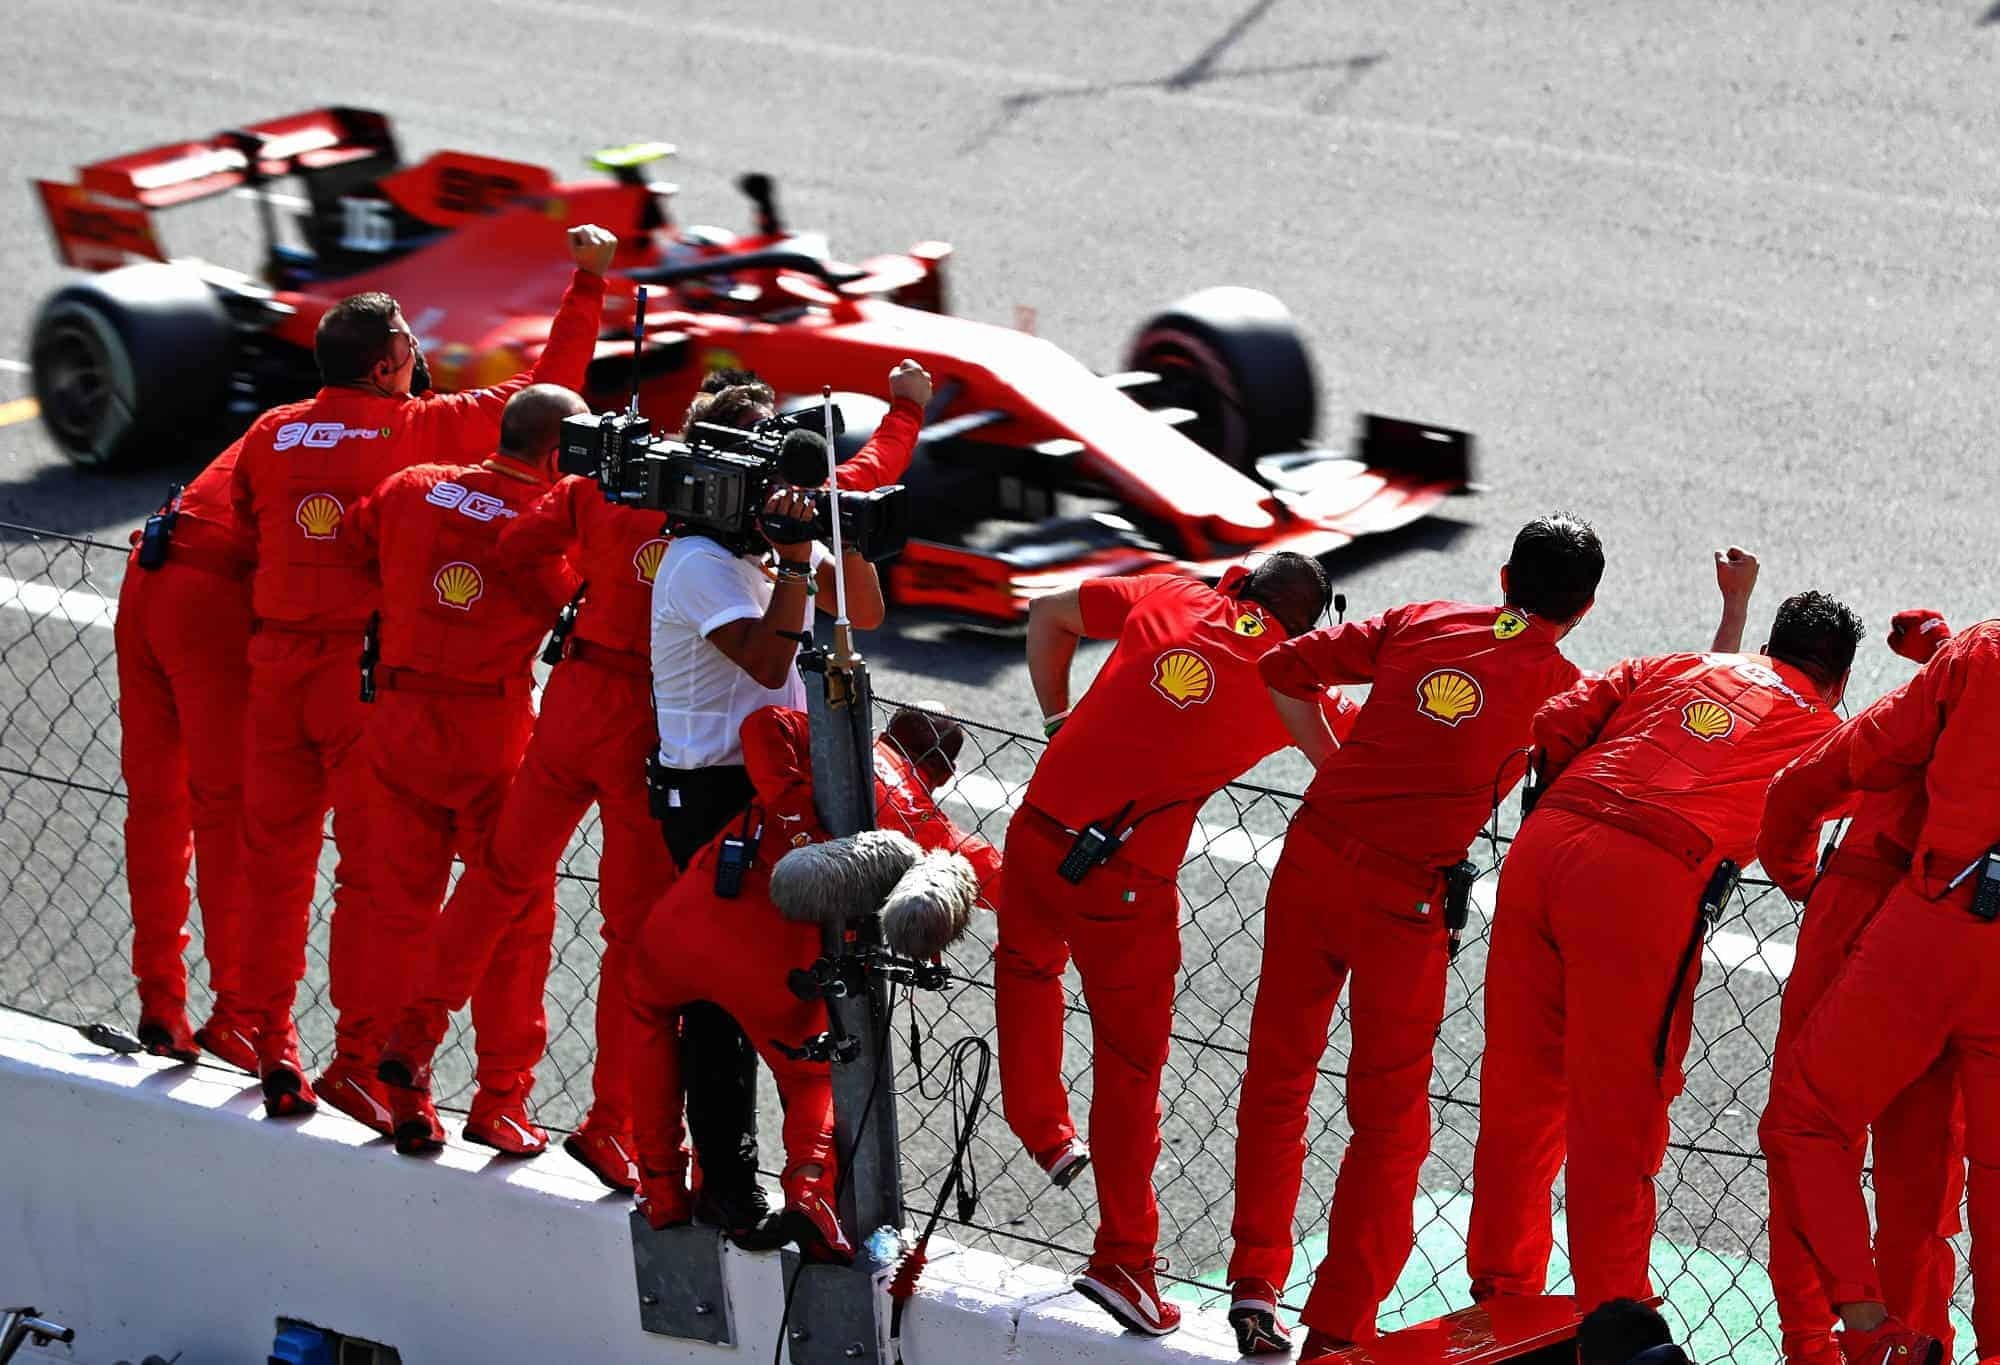 Charles Leclerc Ferrari SF90 Italian GP F1 2019 celebration of his race win with pitwall Photo Ferrari Sky Sports F1